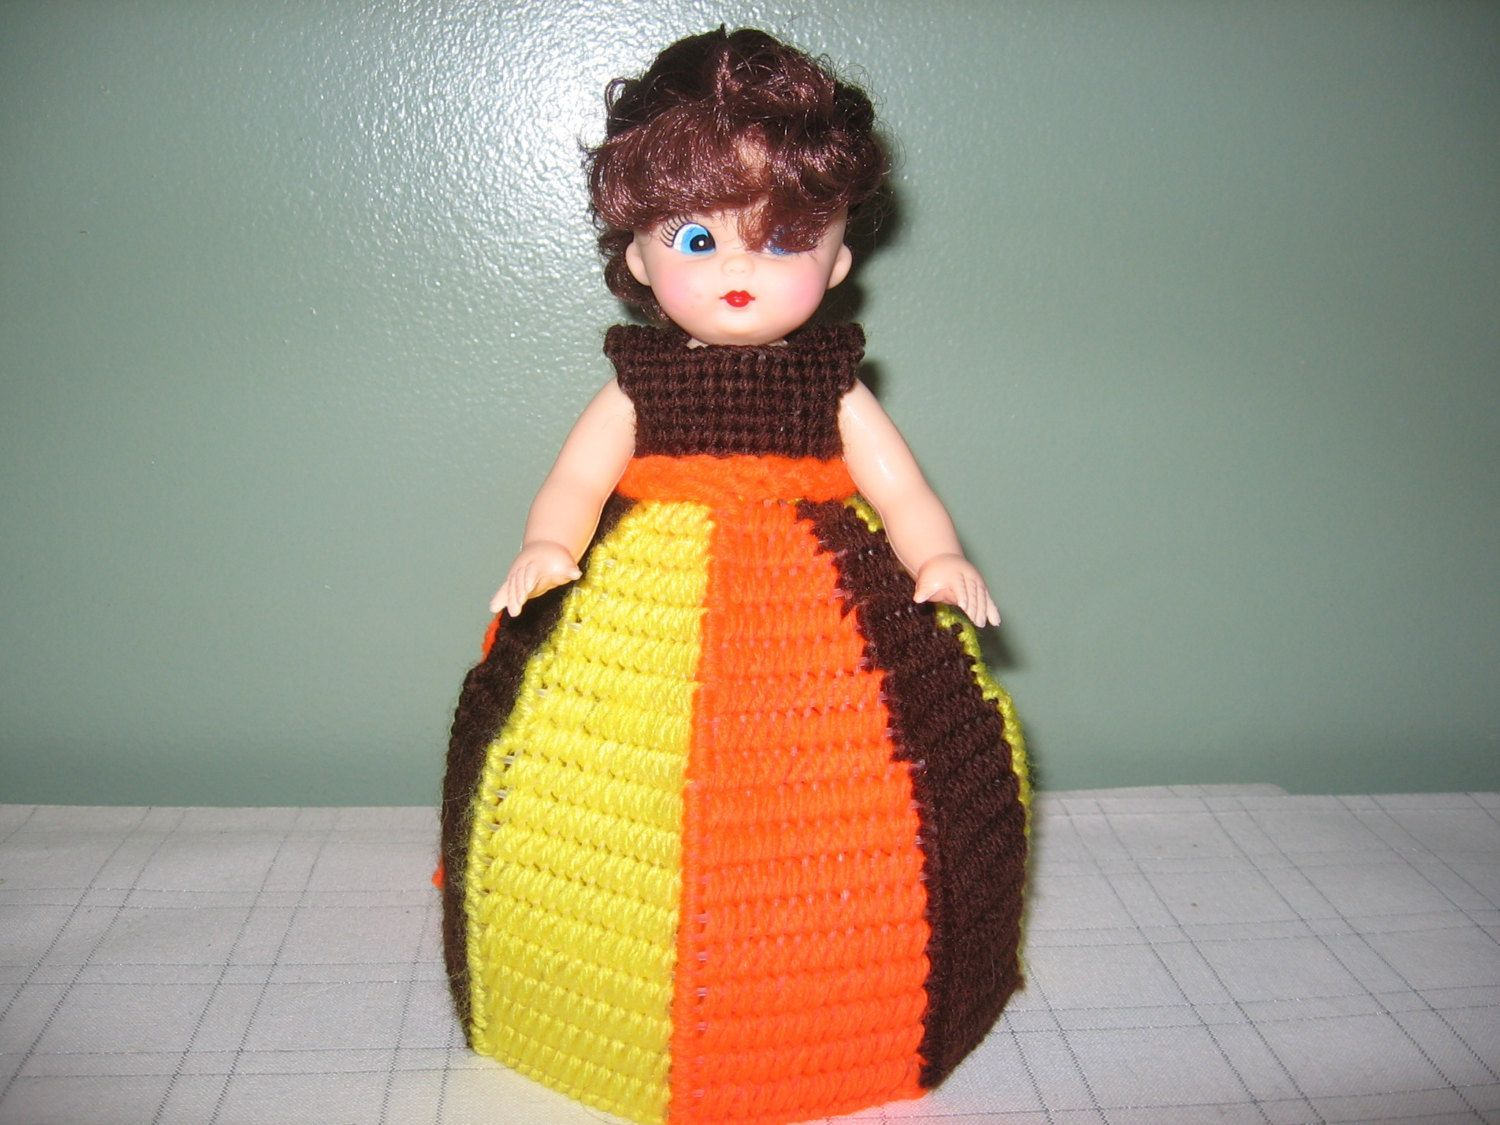 2- Fall Collectible Dolls - use for fall decorating or air freshner dolls priced for the month of July only, get them now!! by CreationsbyAMJ on Etsy #airfreshnerdolls 2- Fall Collectible Dolls - use for fall decorating or air freshner dolls priced for the month of July only, get them now!! by CreationsbyAMJ on Etsy #airfreshnerdolls